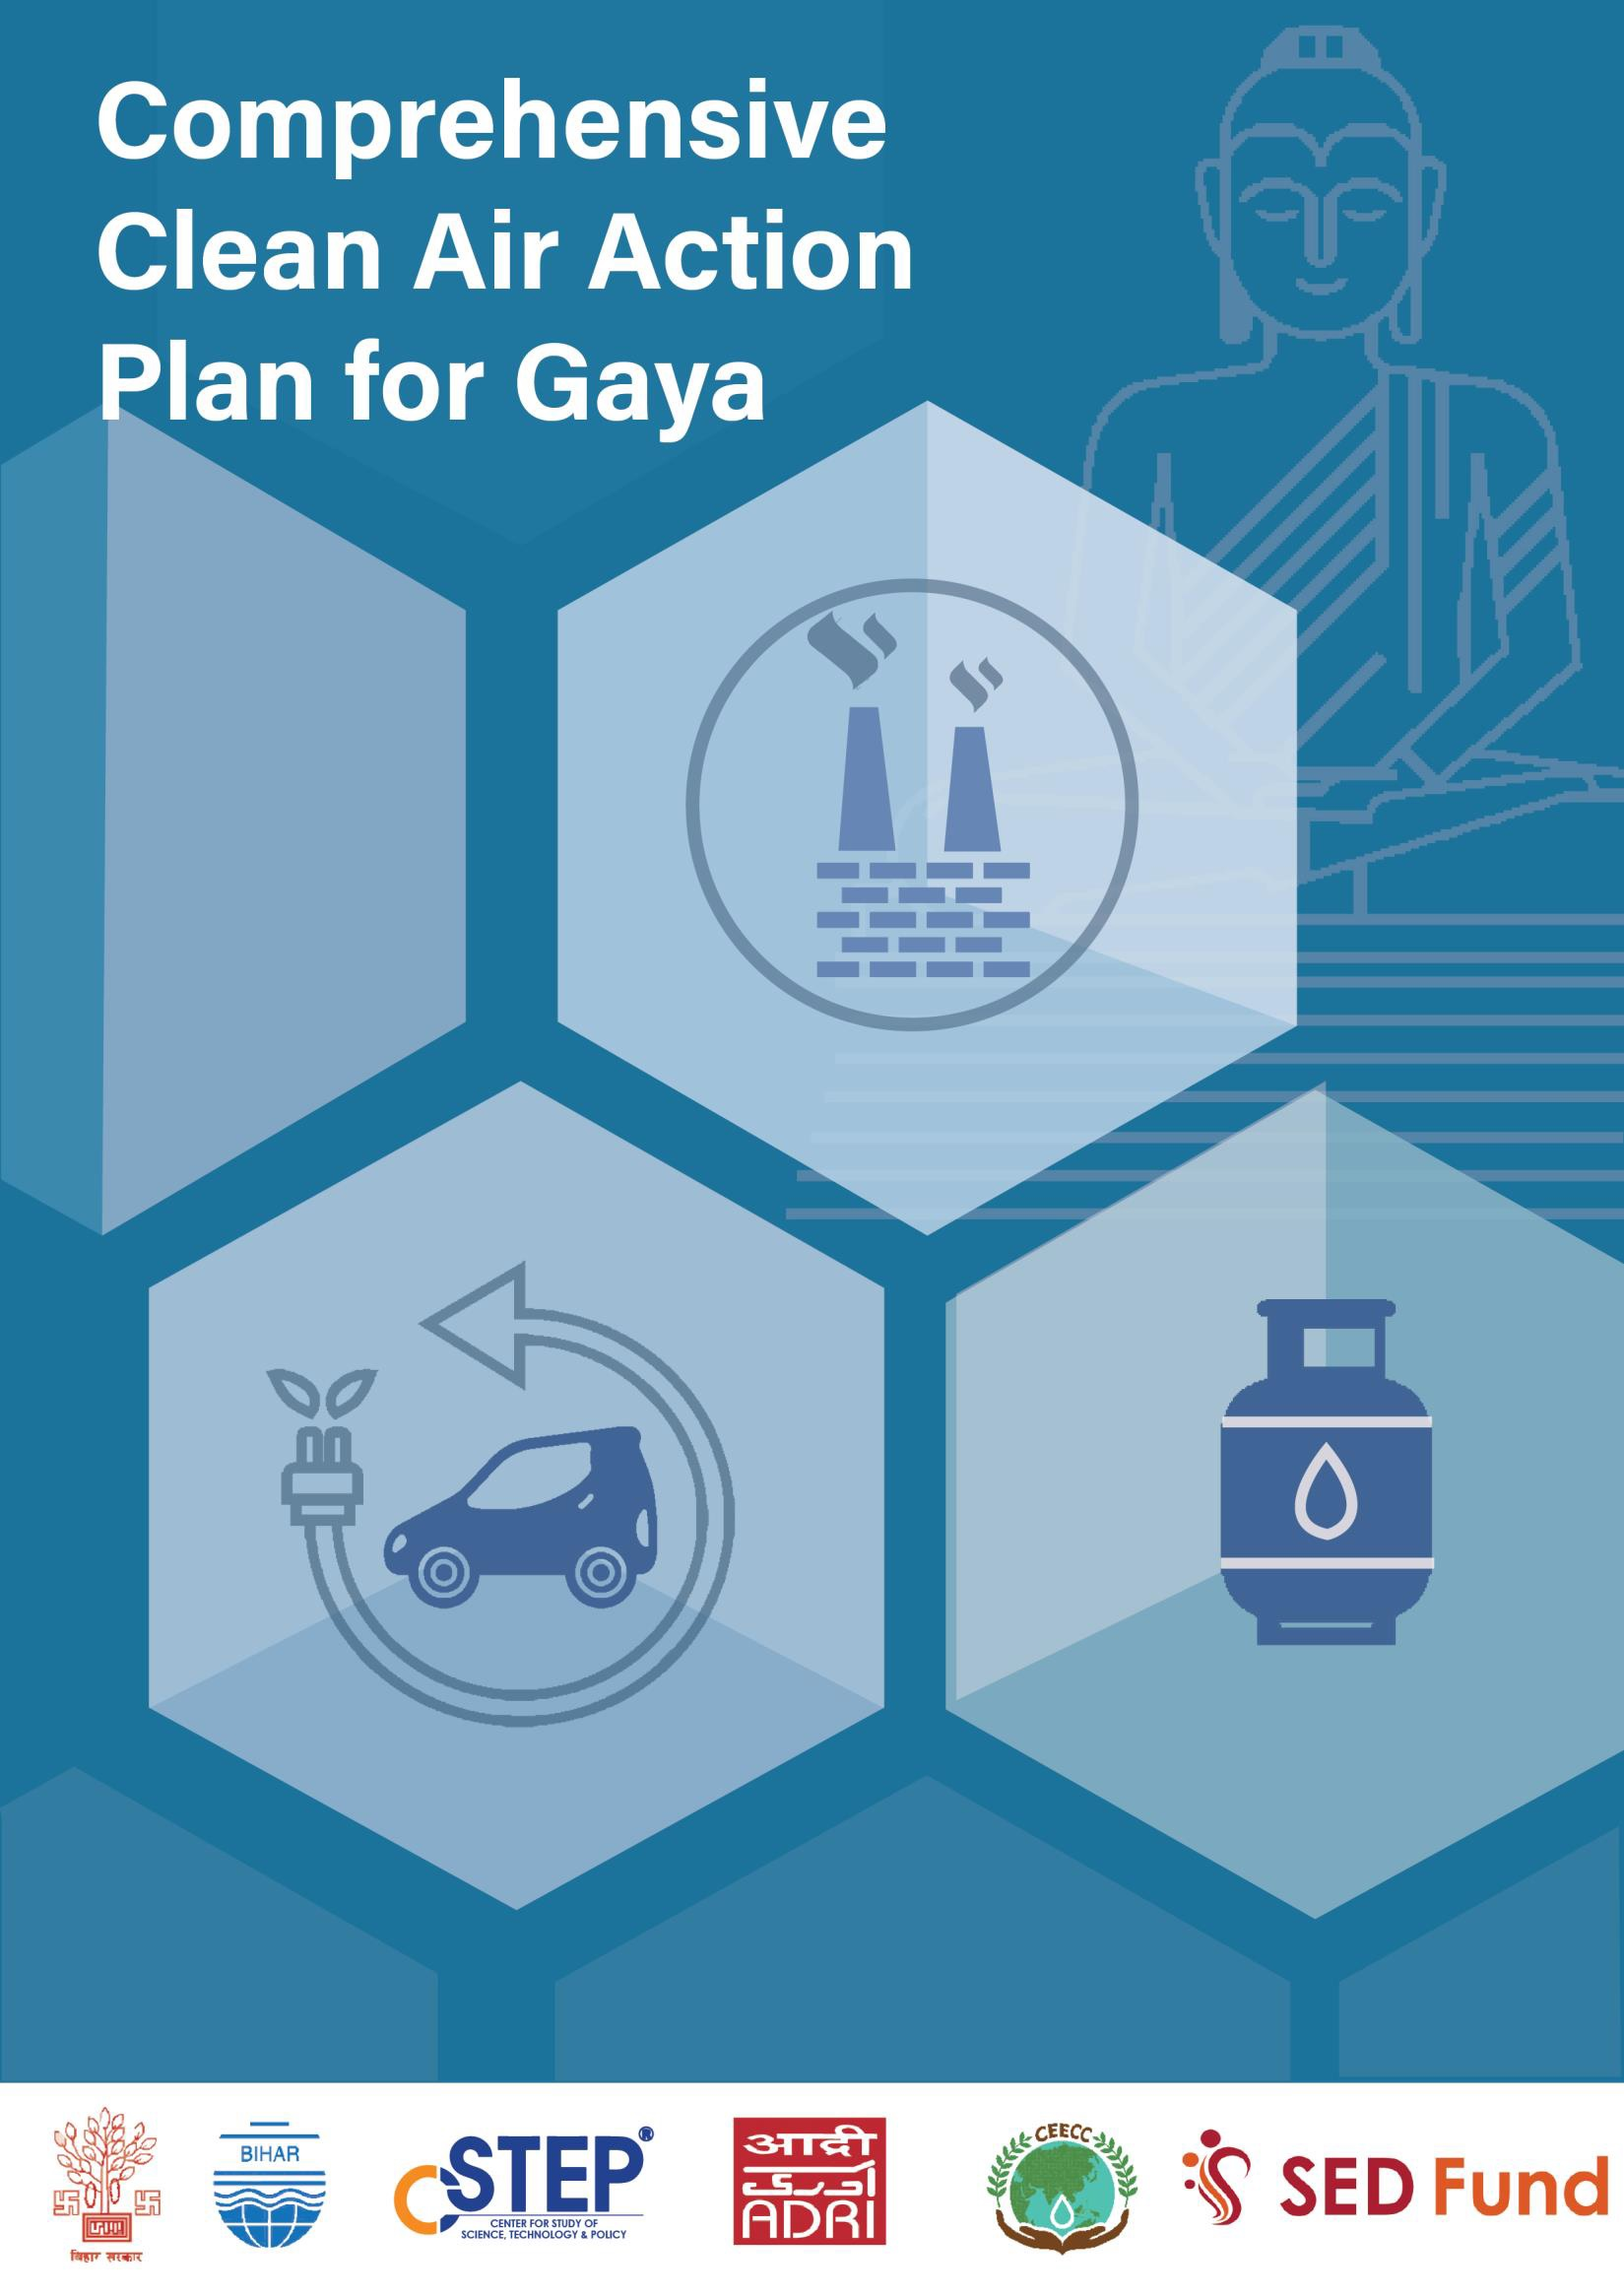 Comprehensive Clean Air Action Plan for Gaya